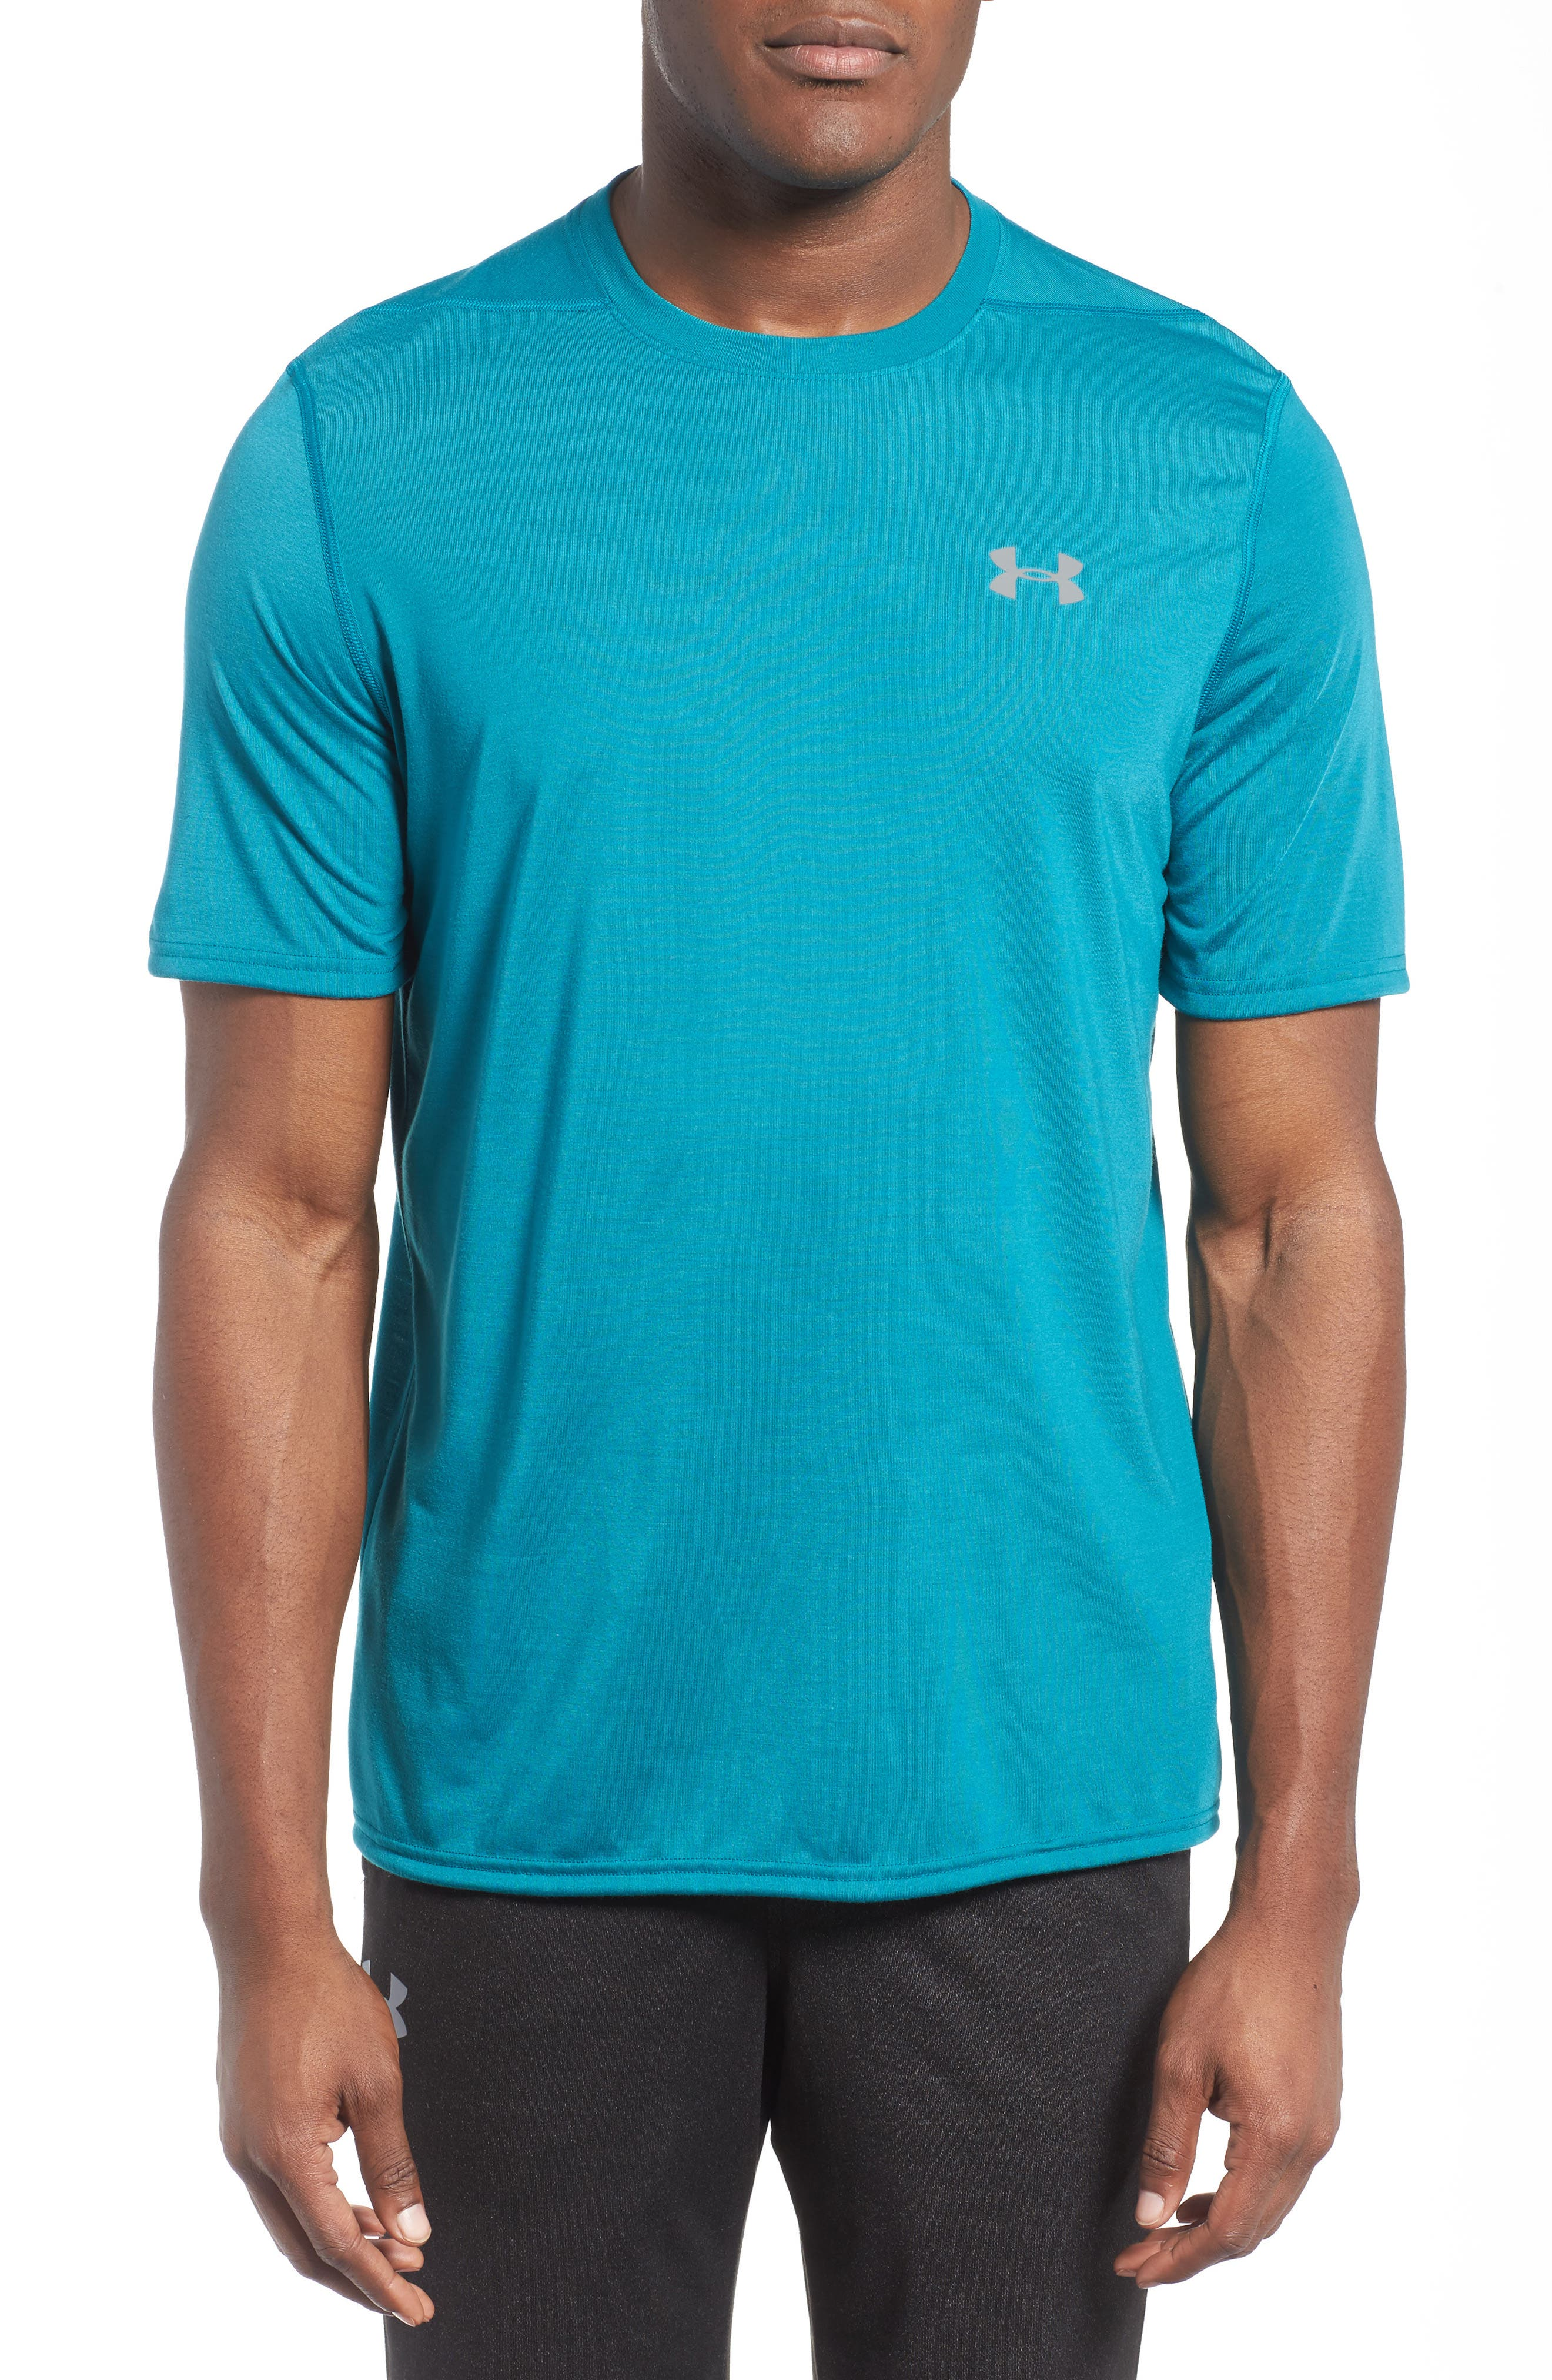 Alternate Image 1 Selected - Under Armour Regular Fit Threadborne T-Shirt